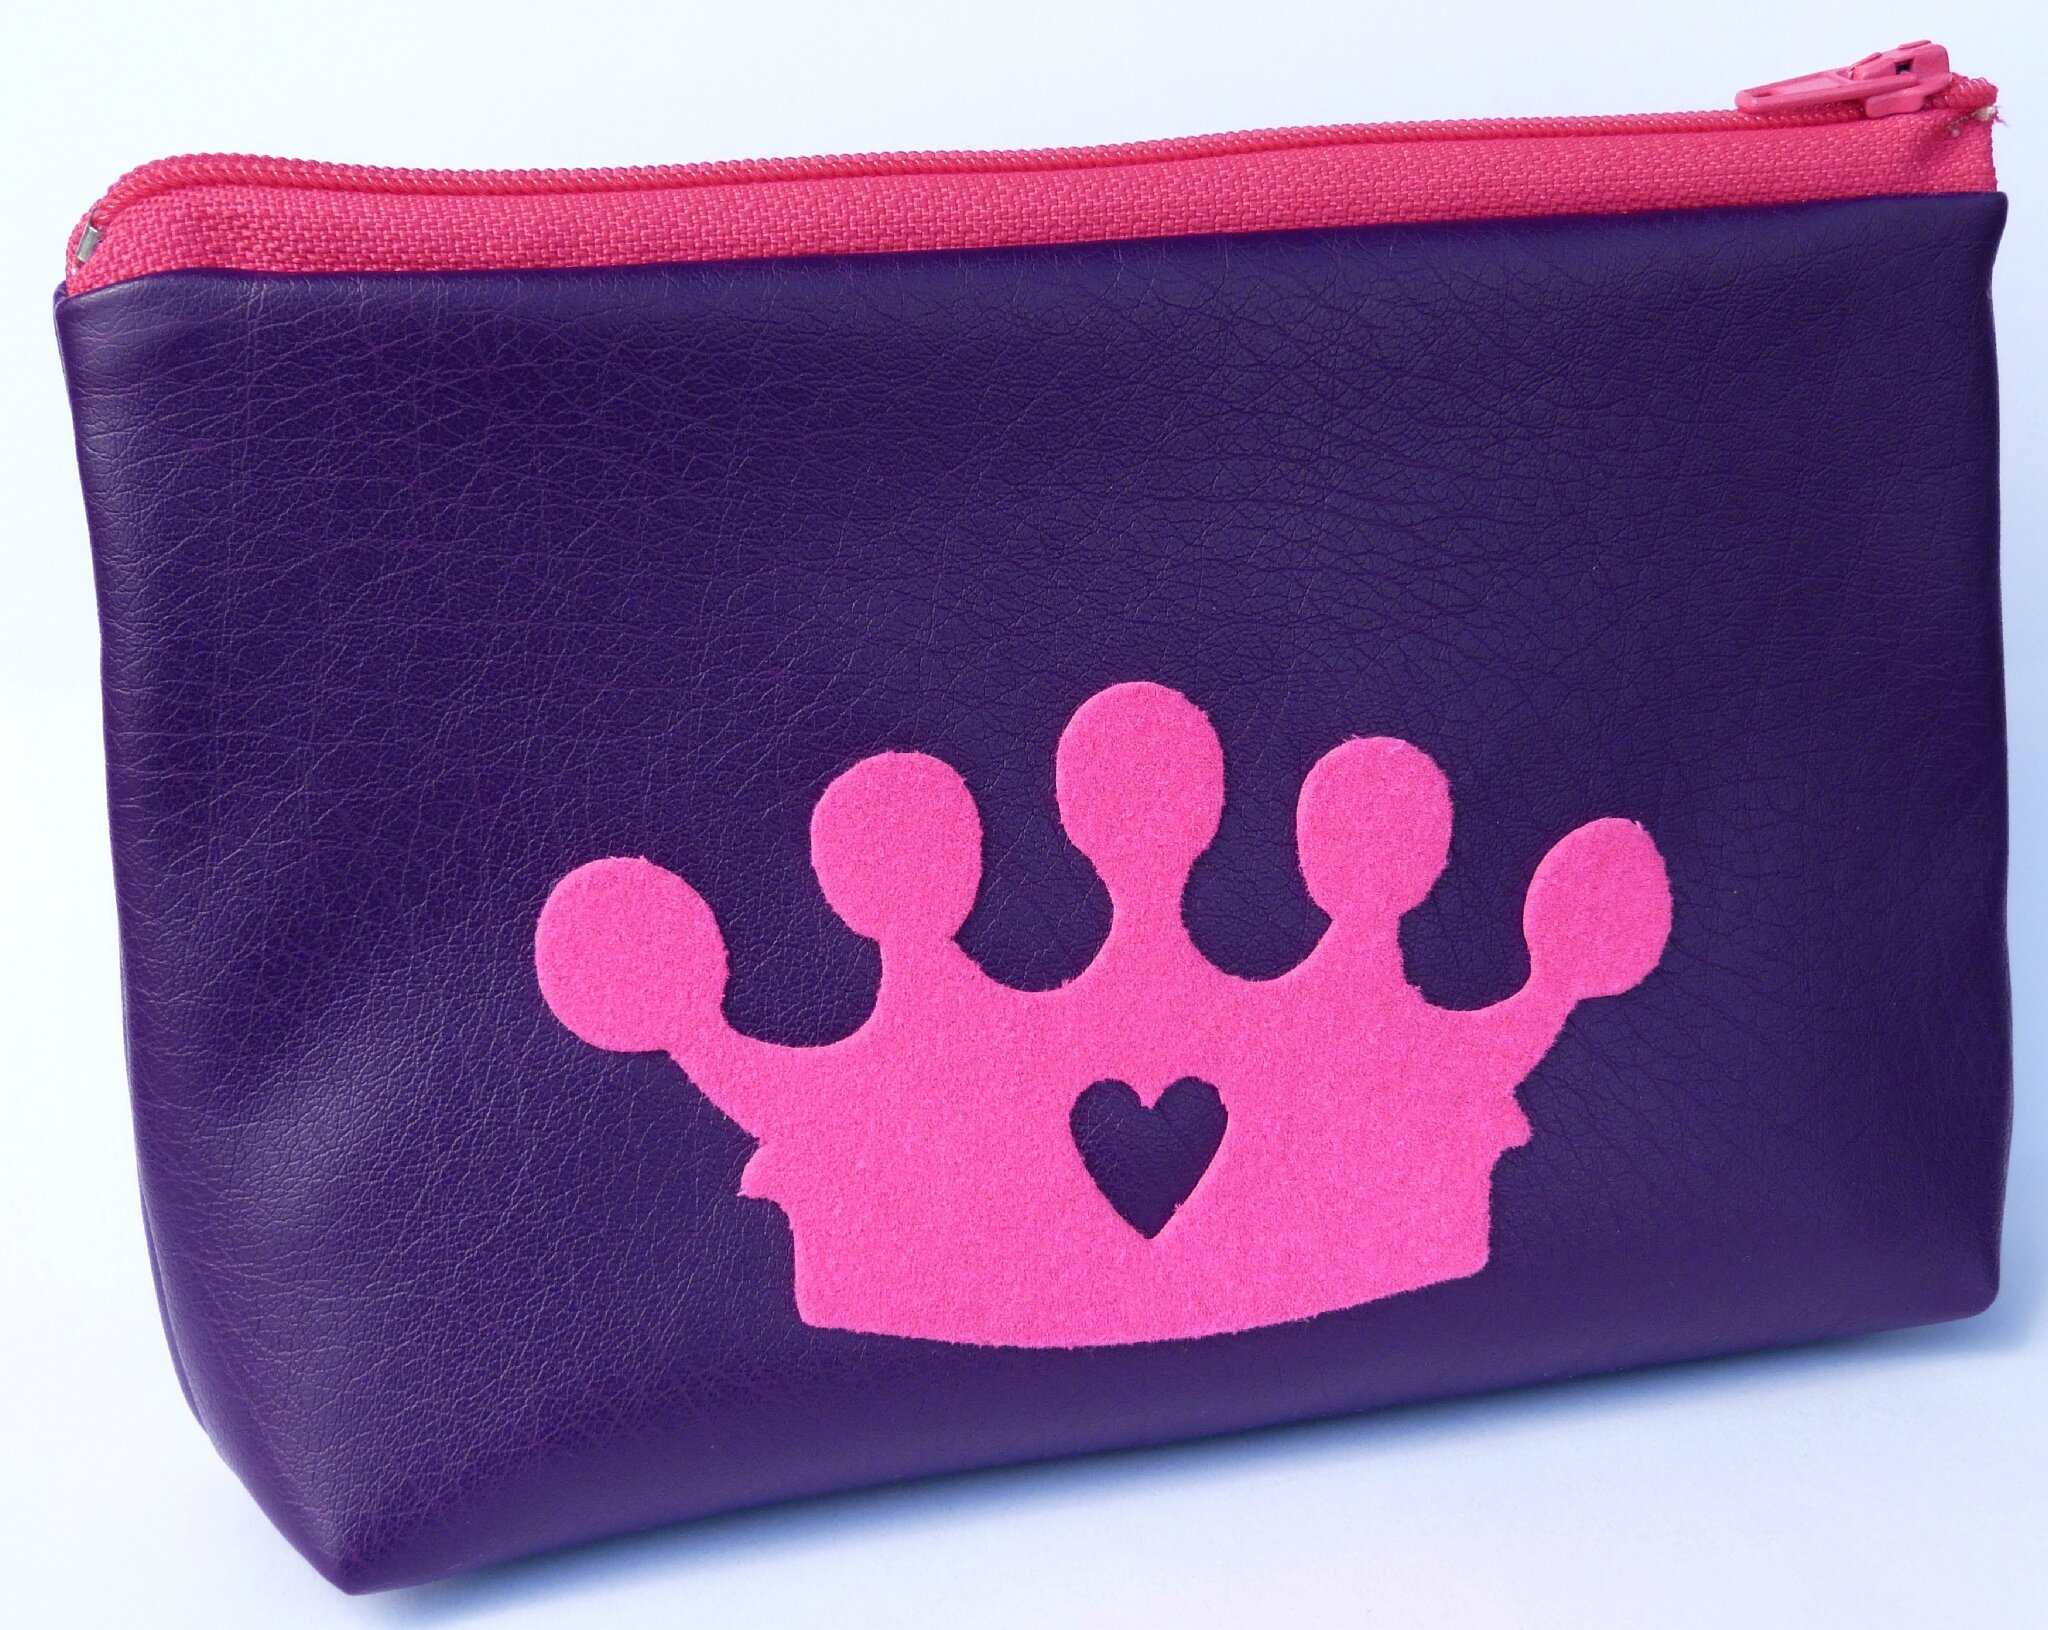 40. simili cuir violet et fuchsia - couronne flex velours rose